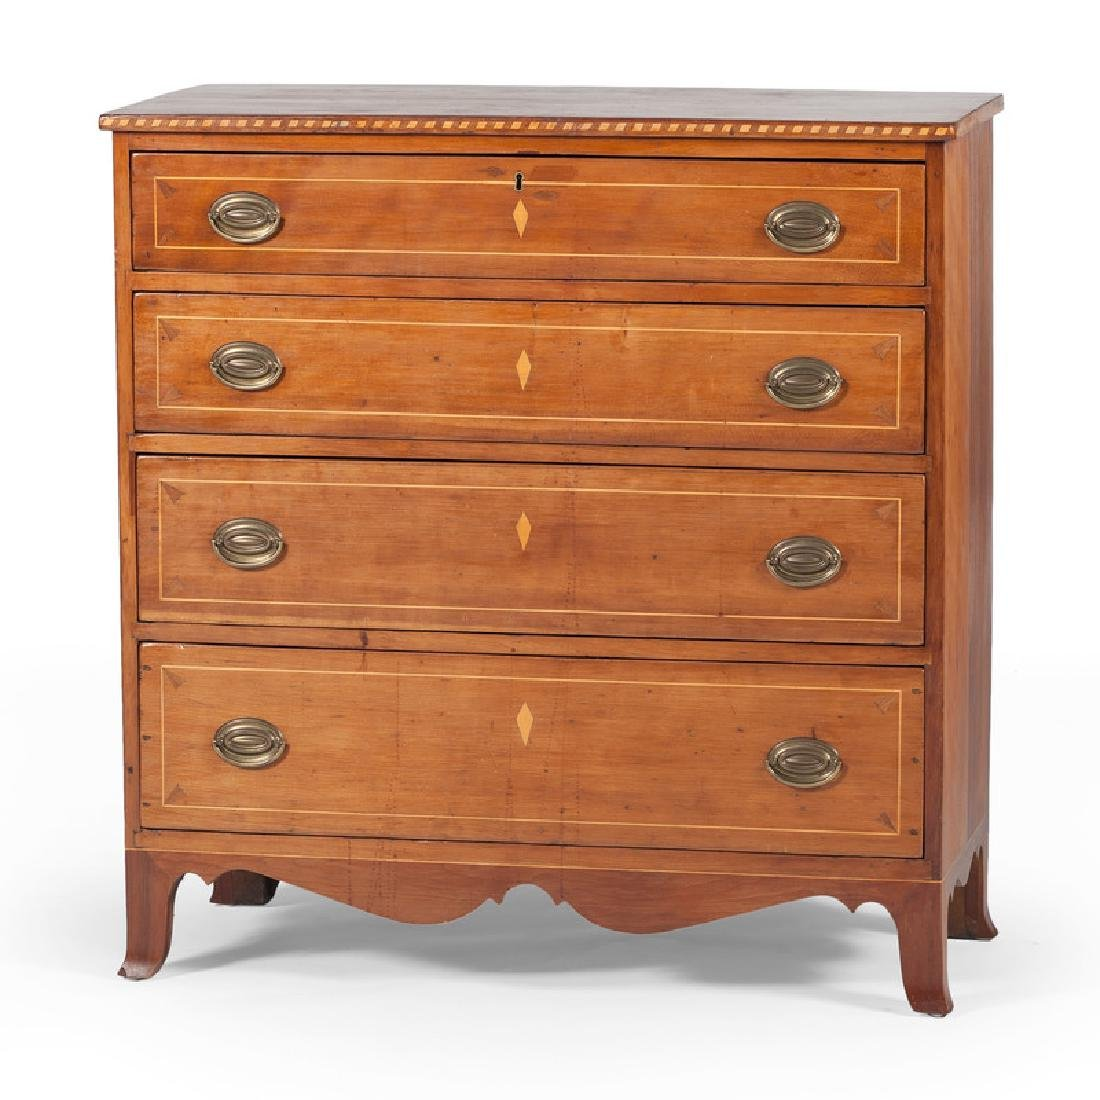 Federal Inlaid Chest of Drawers